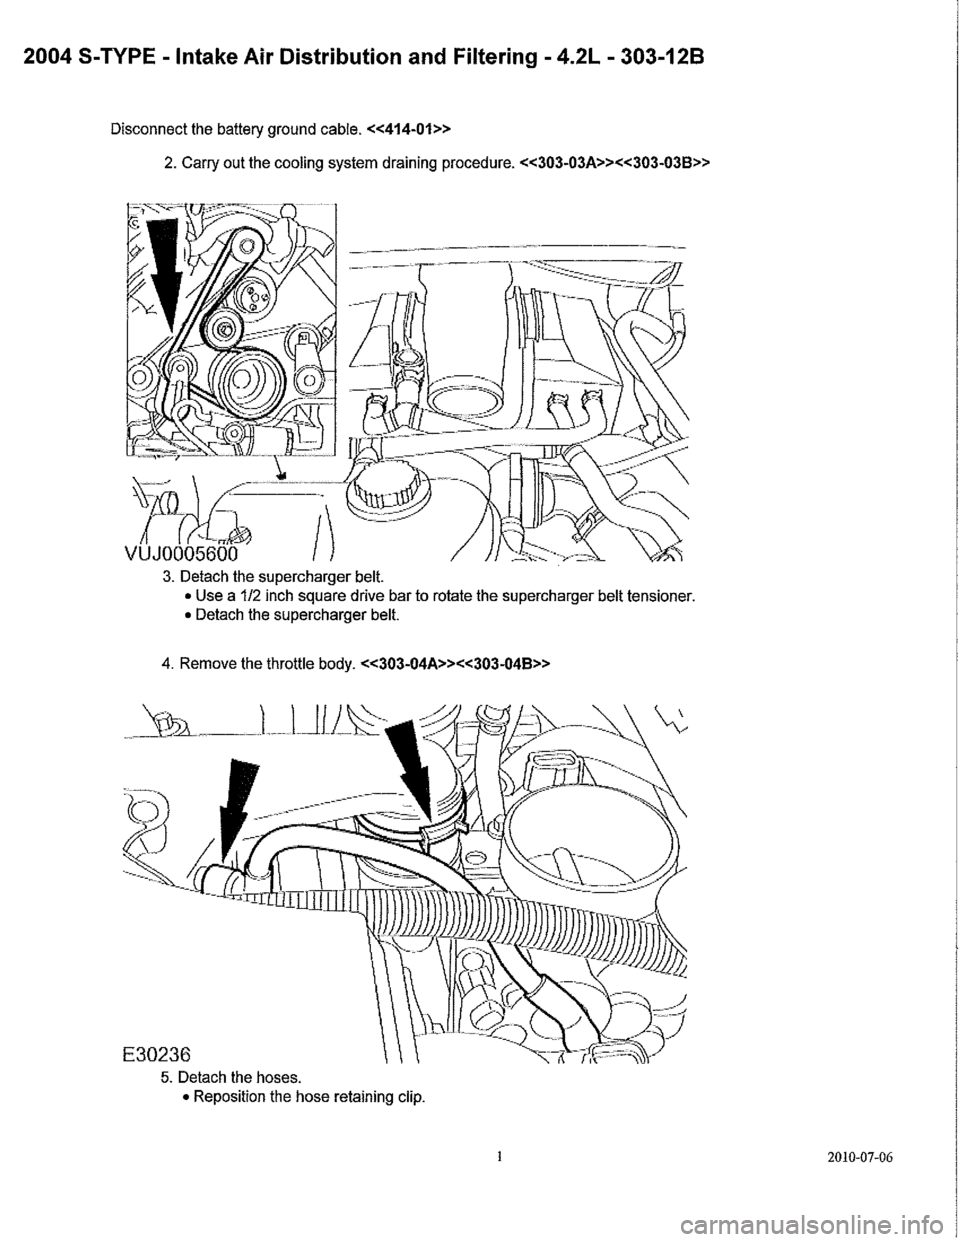 JAGUAR S TYPE 2005 1.G Supercharger Removal And Instalation Manual, Page 3